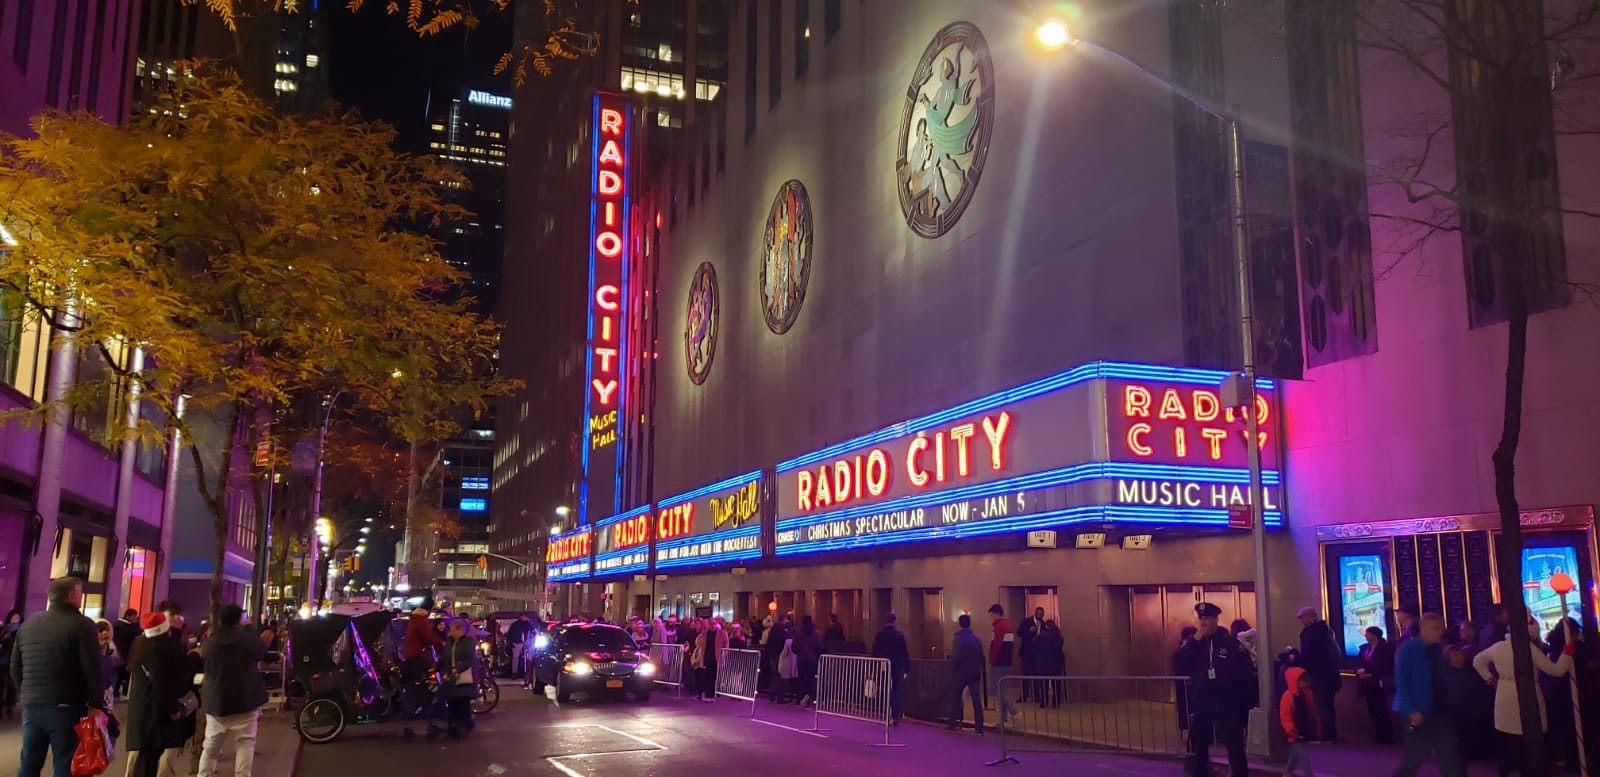 Radio City Music Hall and the Hildreth Meière relief sculptures along the 50th Street facade.